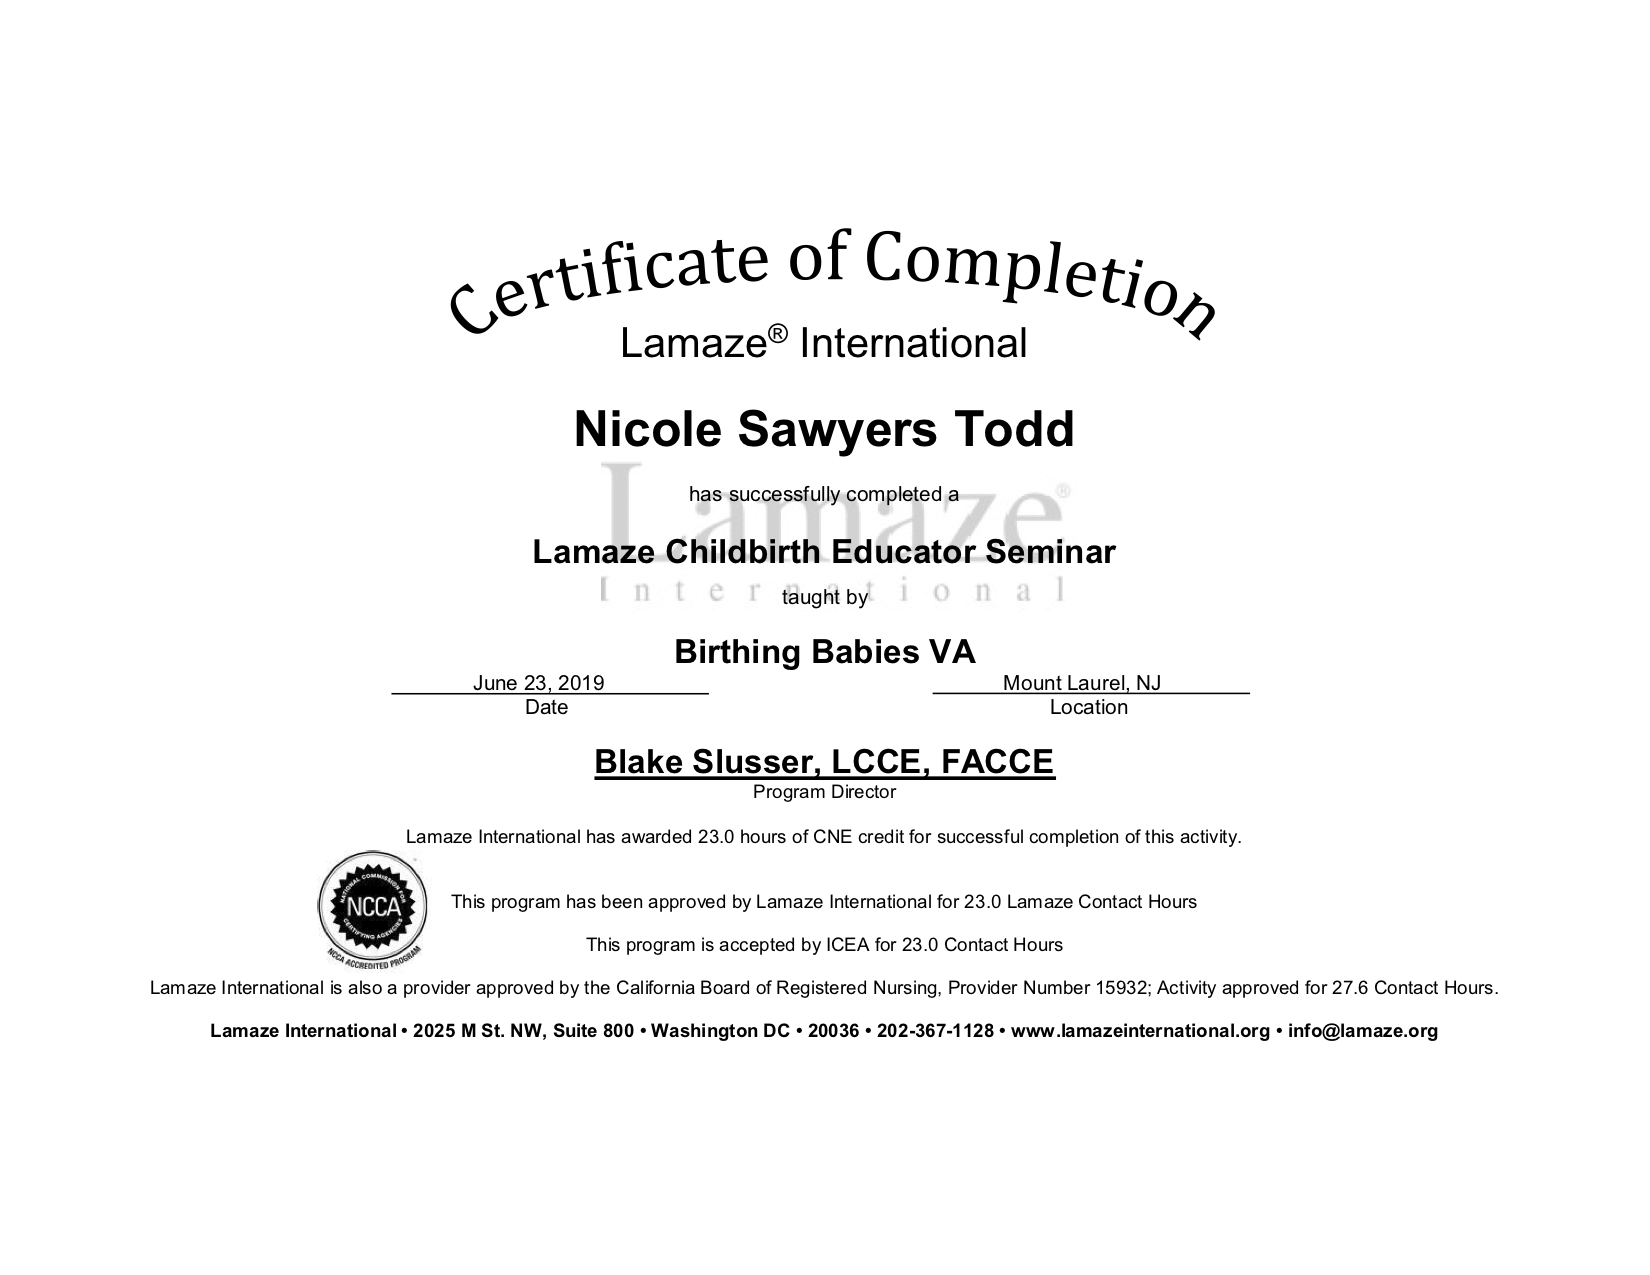 Certificate of Completion Nicole Sawyers Todd.png